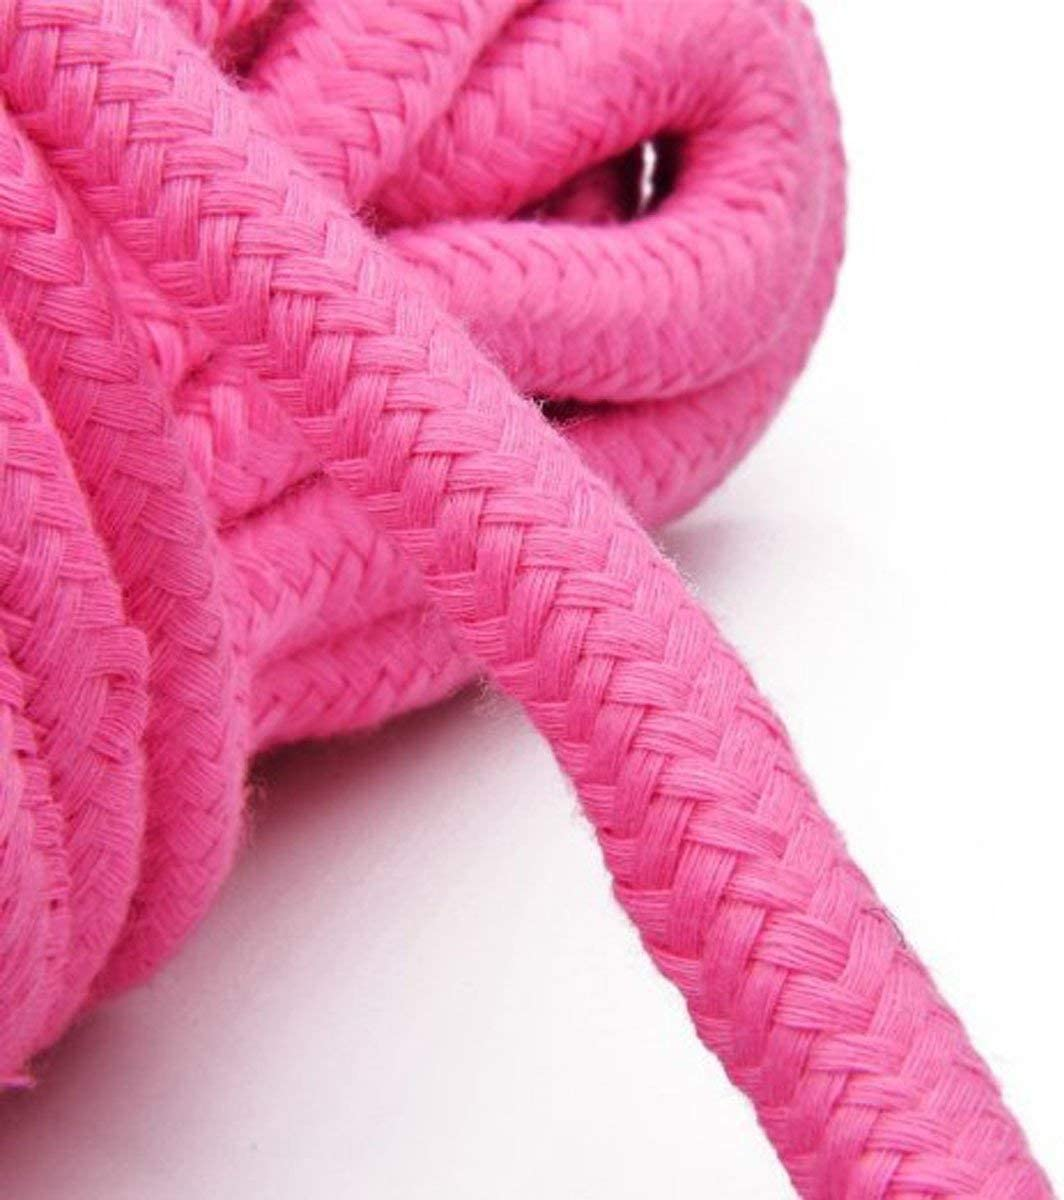 Pink Soft Cotton Rope-32 feet 10m Multi-Function Natural Durable Long Rope